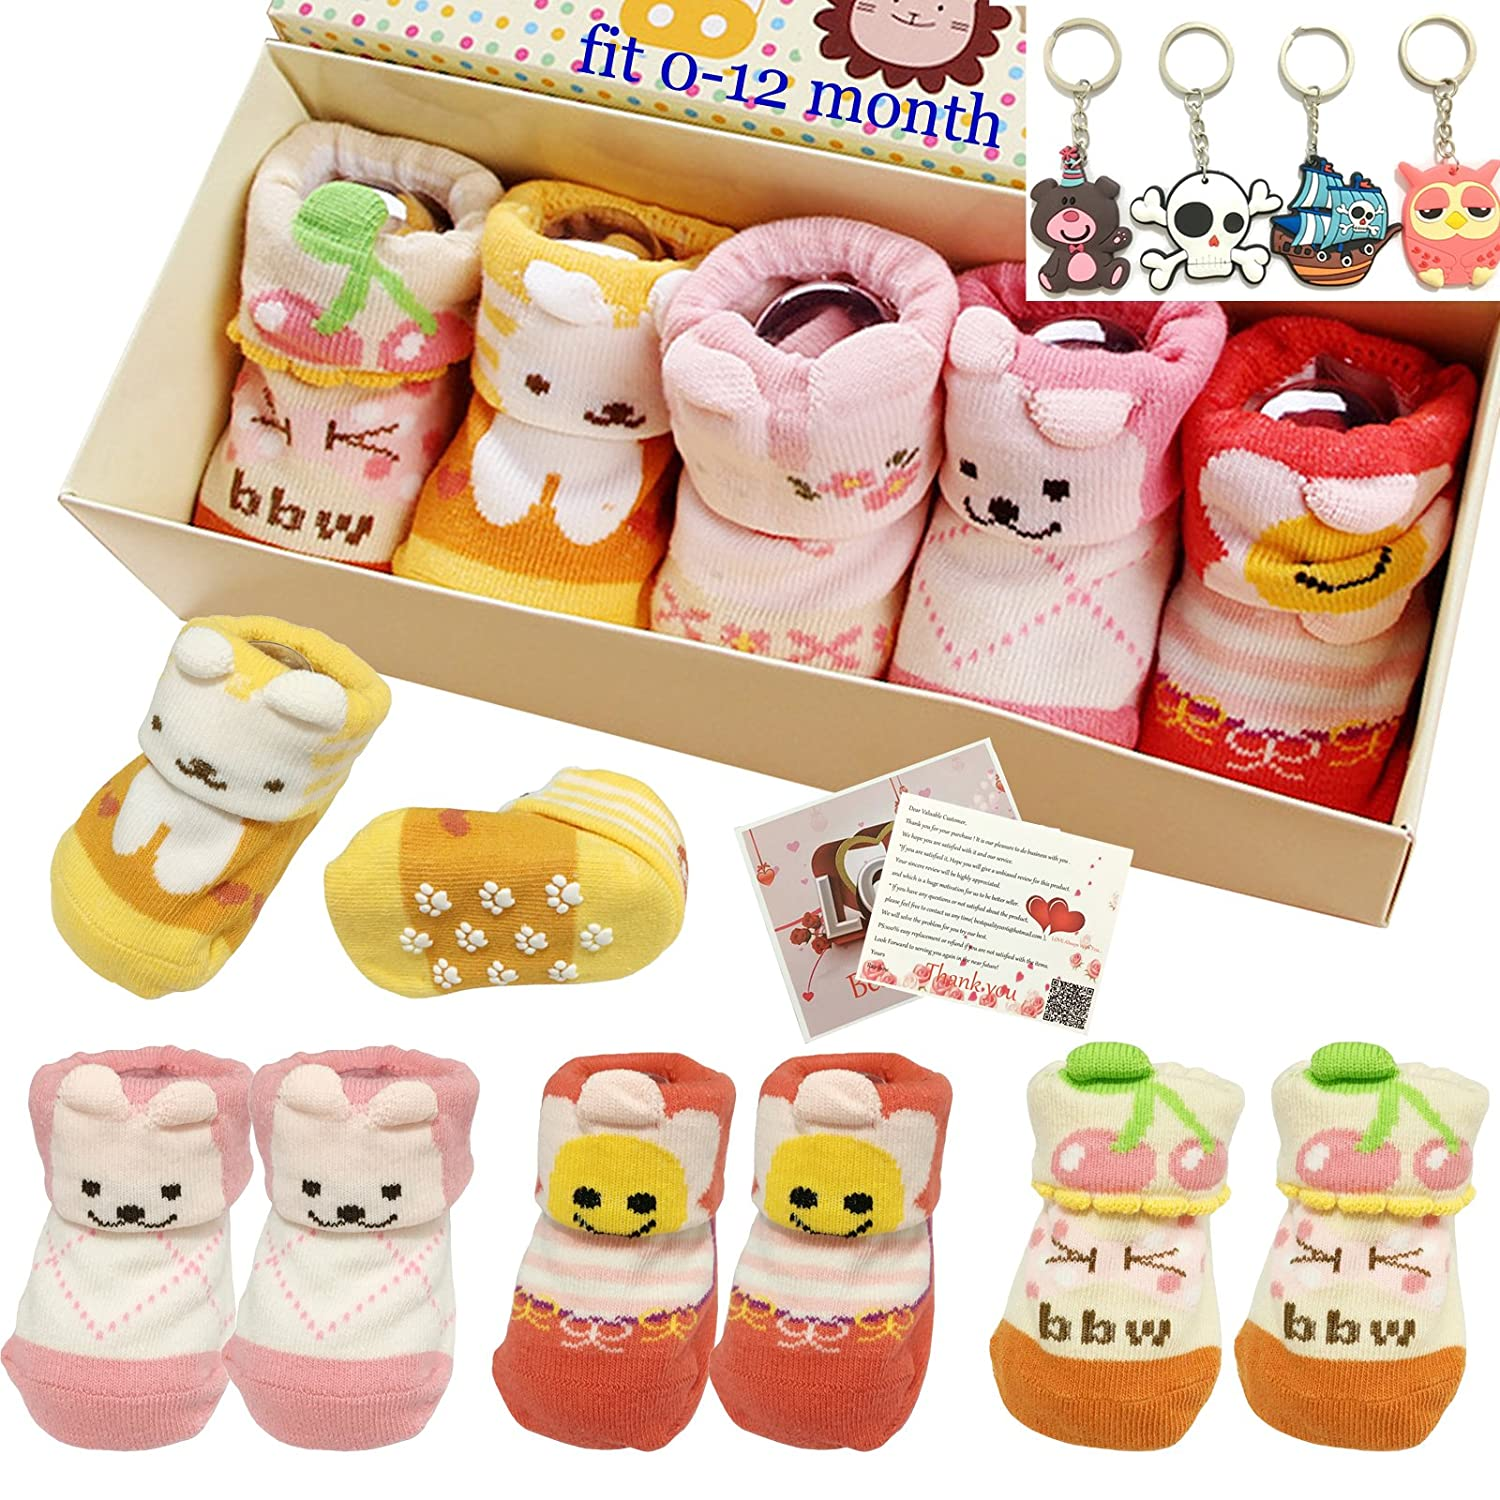 Fly-love® 5pairs 0-18 months Girls Animal Non-Skid Anti Slip Toddler Baby Socks Infant Newborn Cotton Ankle Sock With Cute Box R013